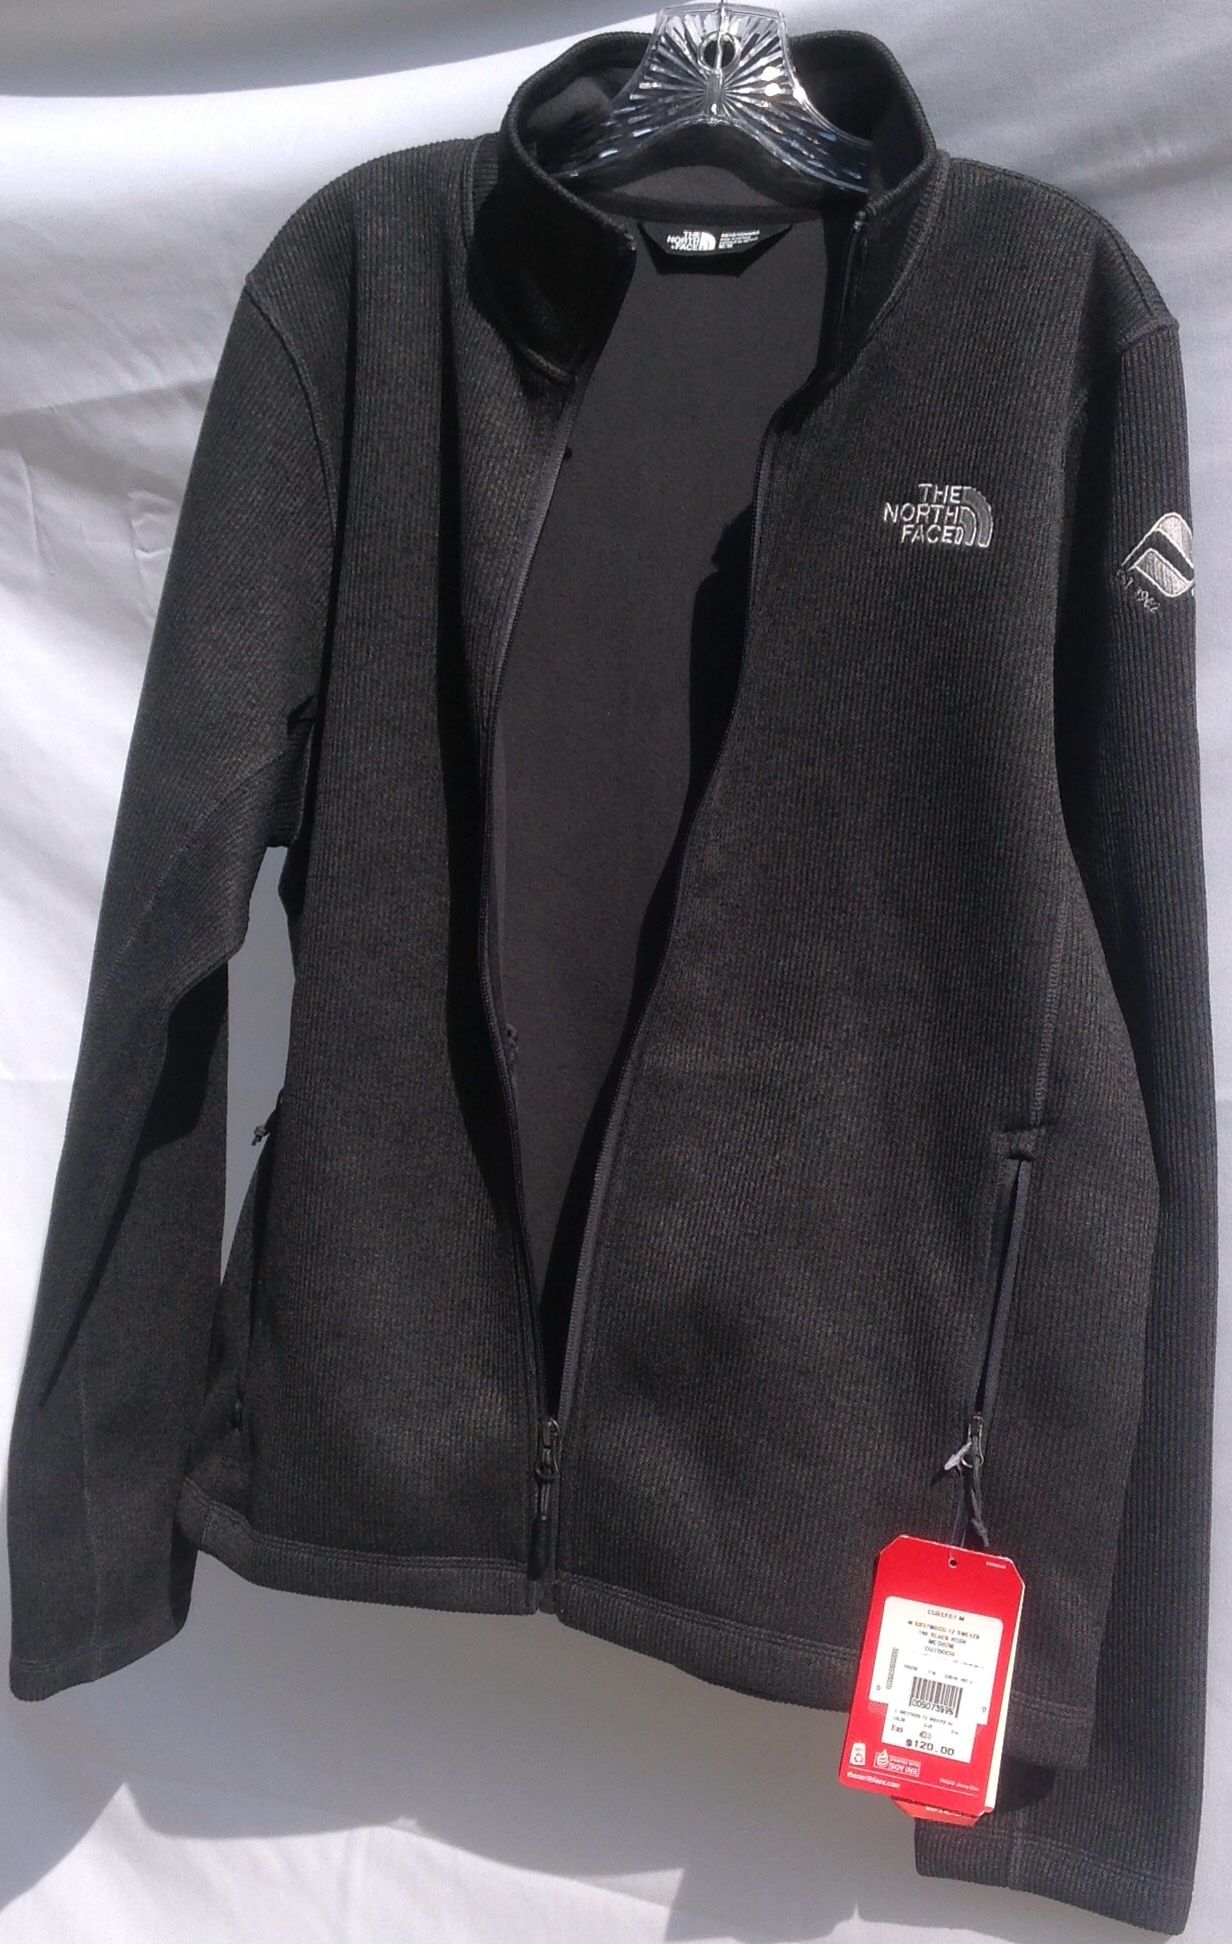 New North Face Vail Mens Sweater On Ebay Men Sweater The North Face Fashion [ 1944 x 1232 Pixel ]